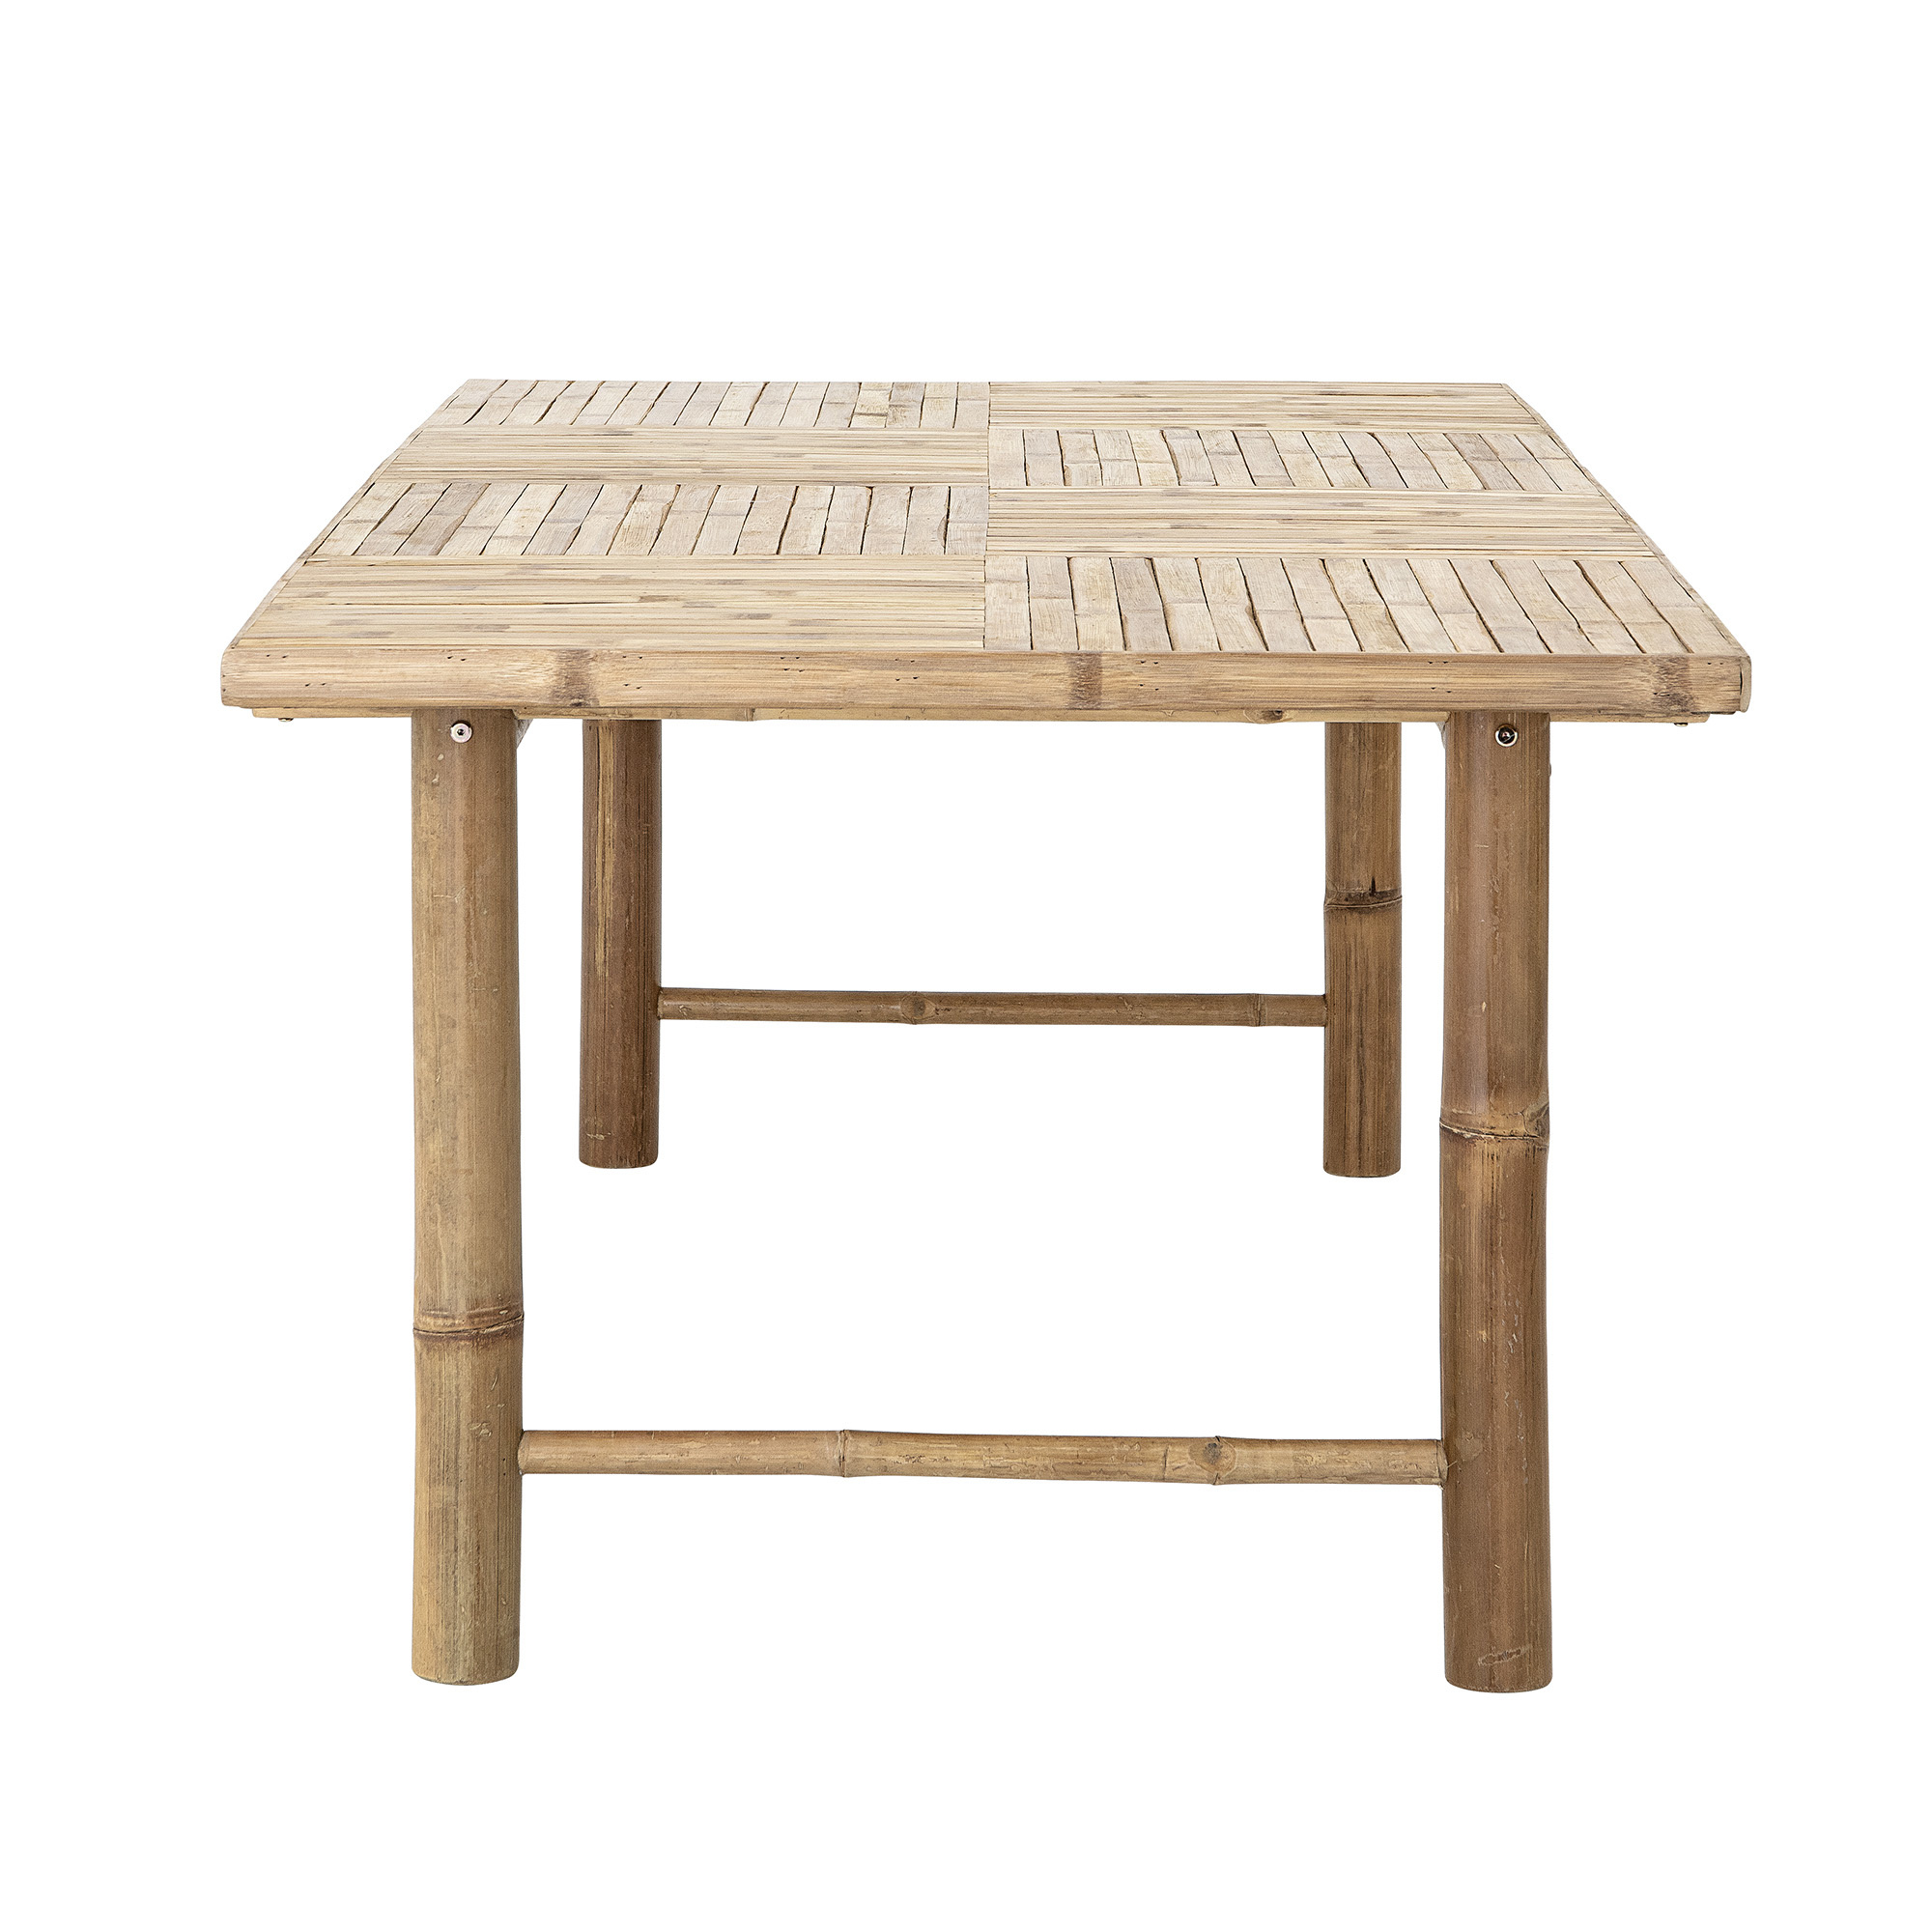 Bloomingville Mandisa Outdoor Dining Table - L200xH74xW100 - Bloomingville